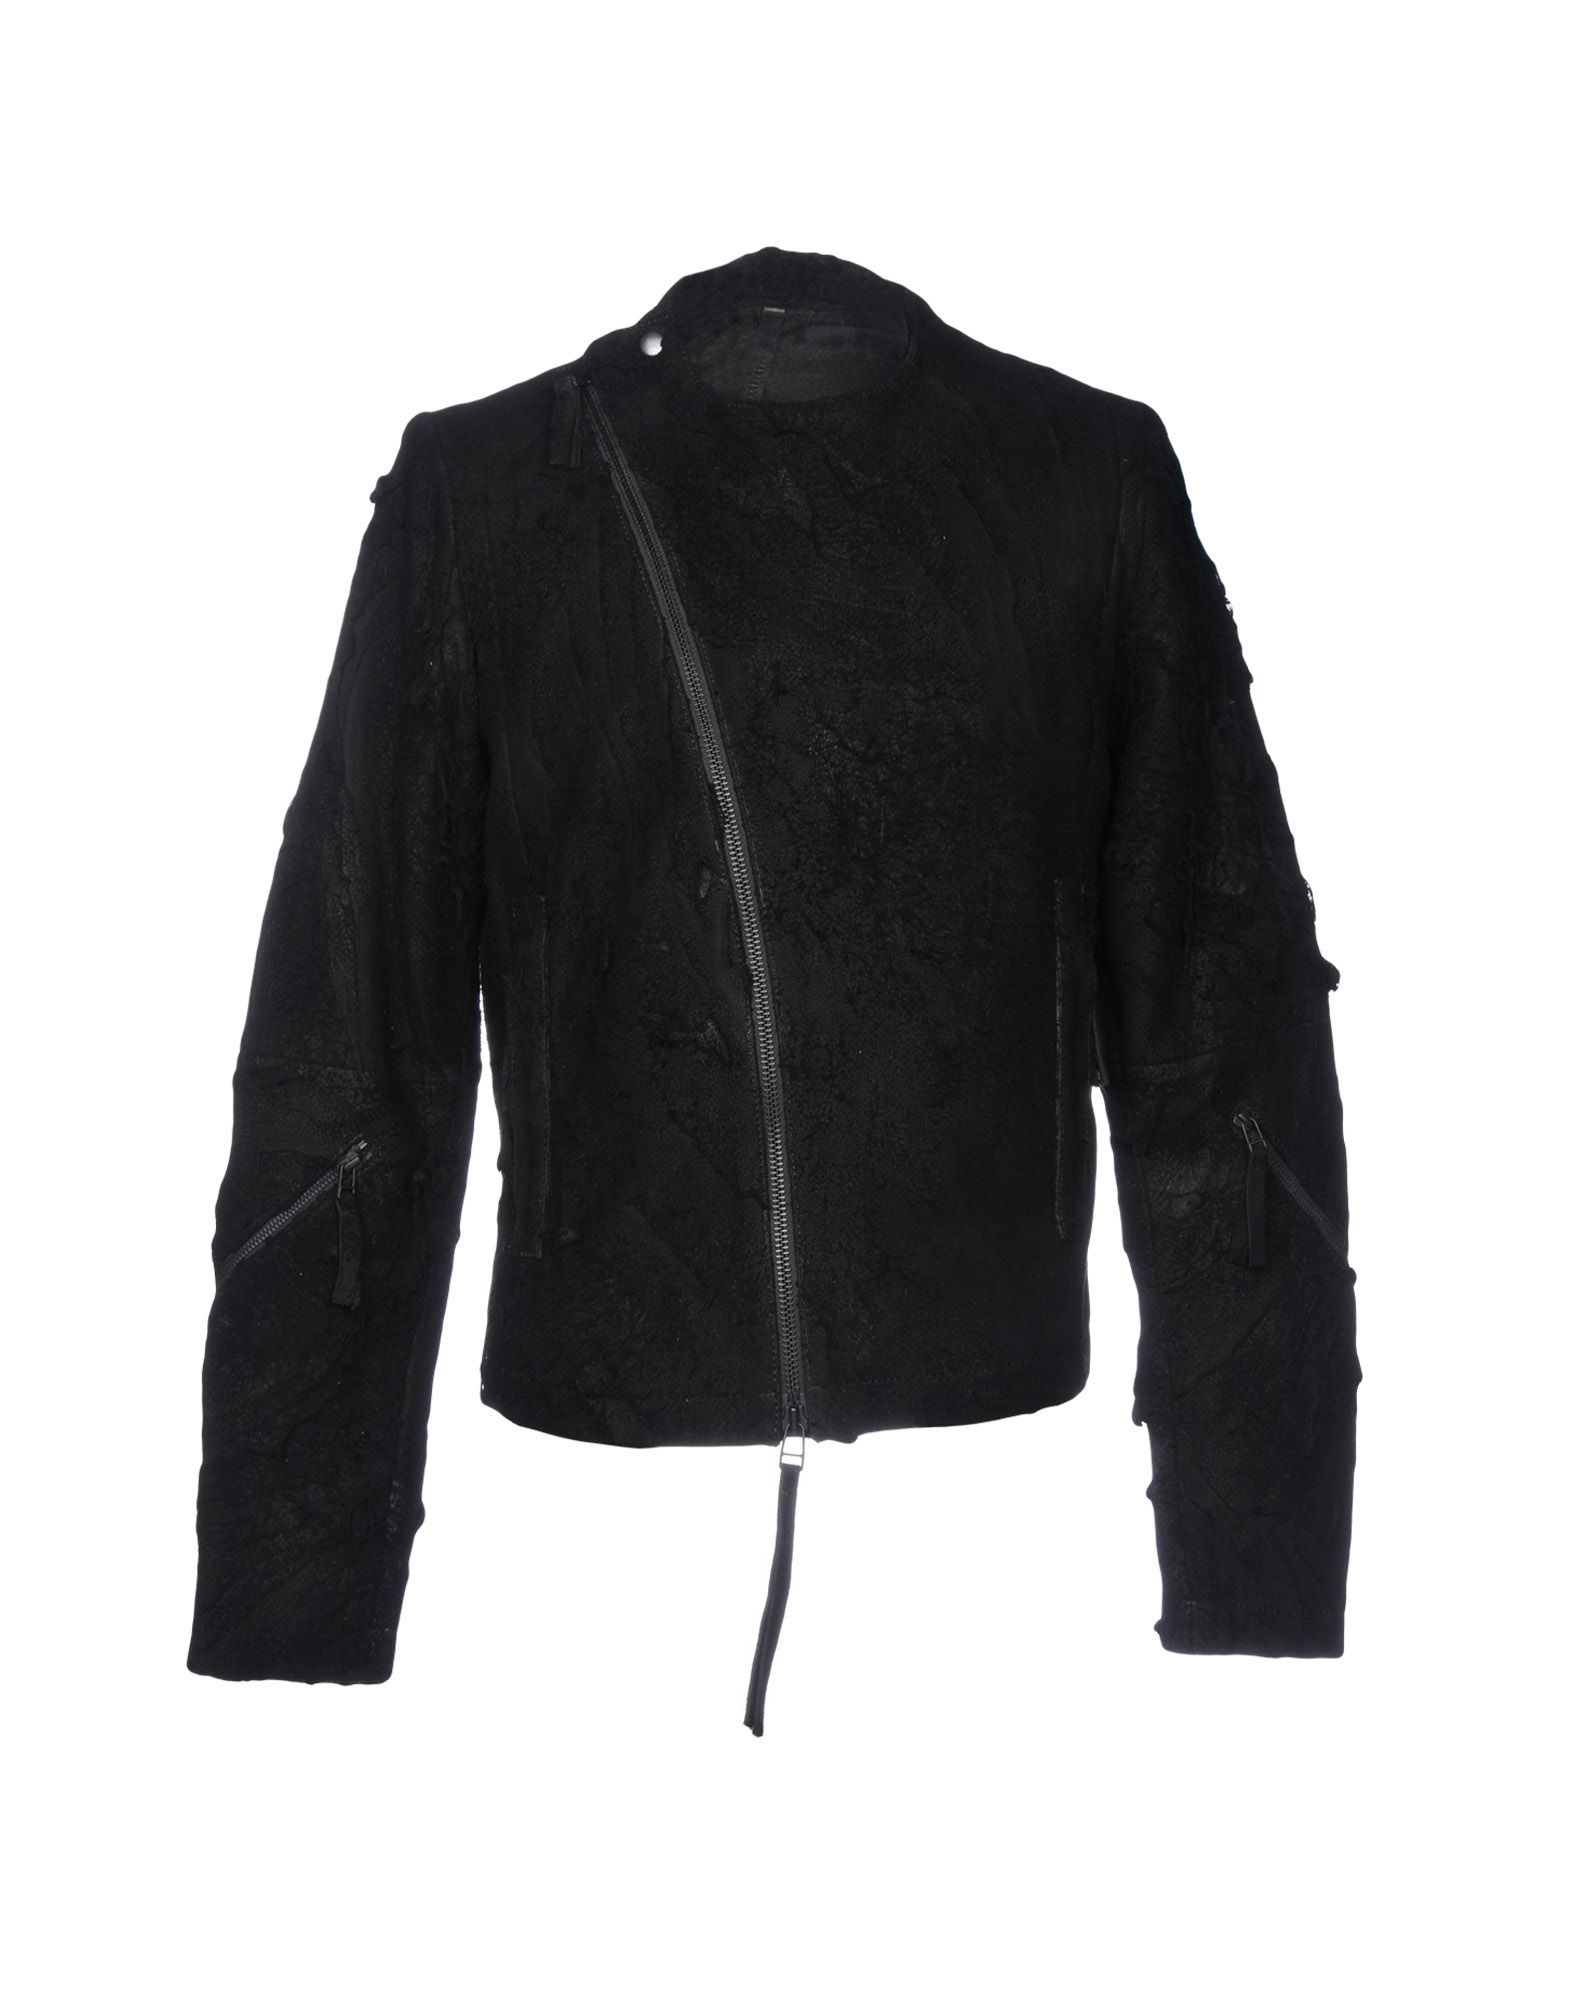 BARBARA I GONGINI Biker Jacket in Black